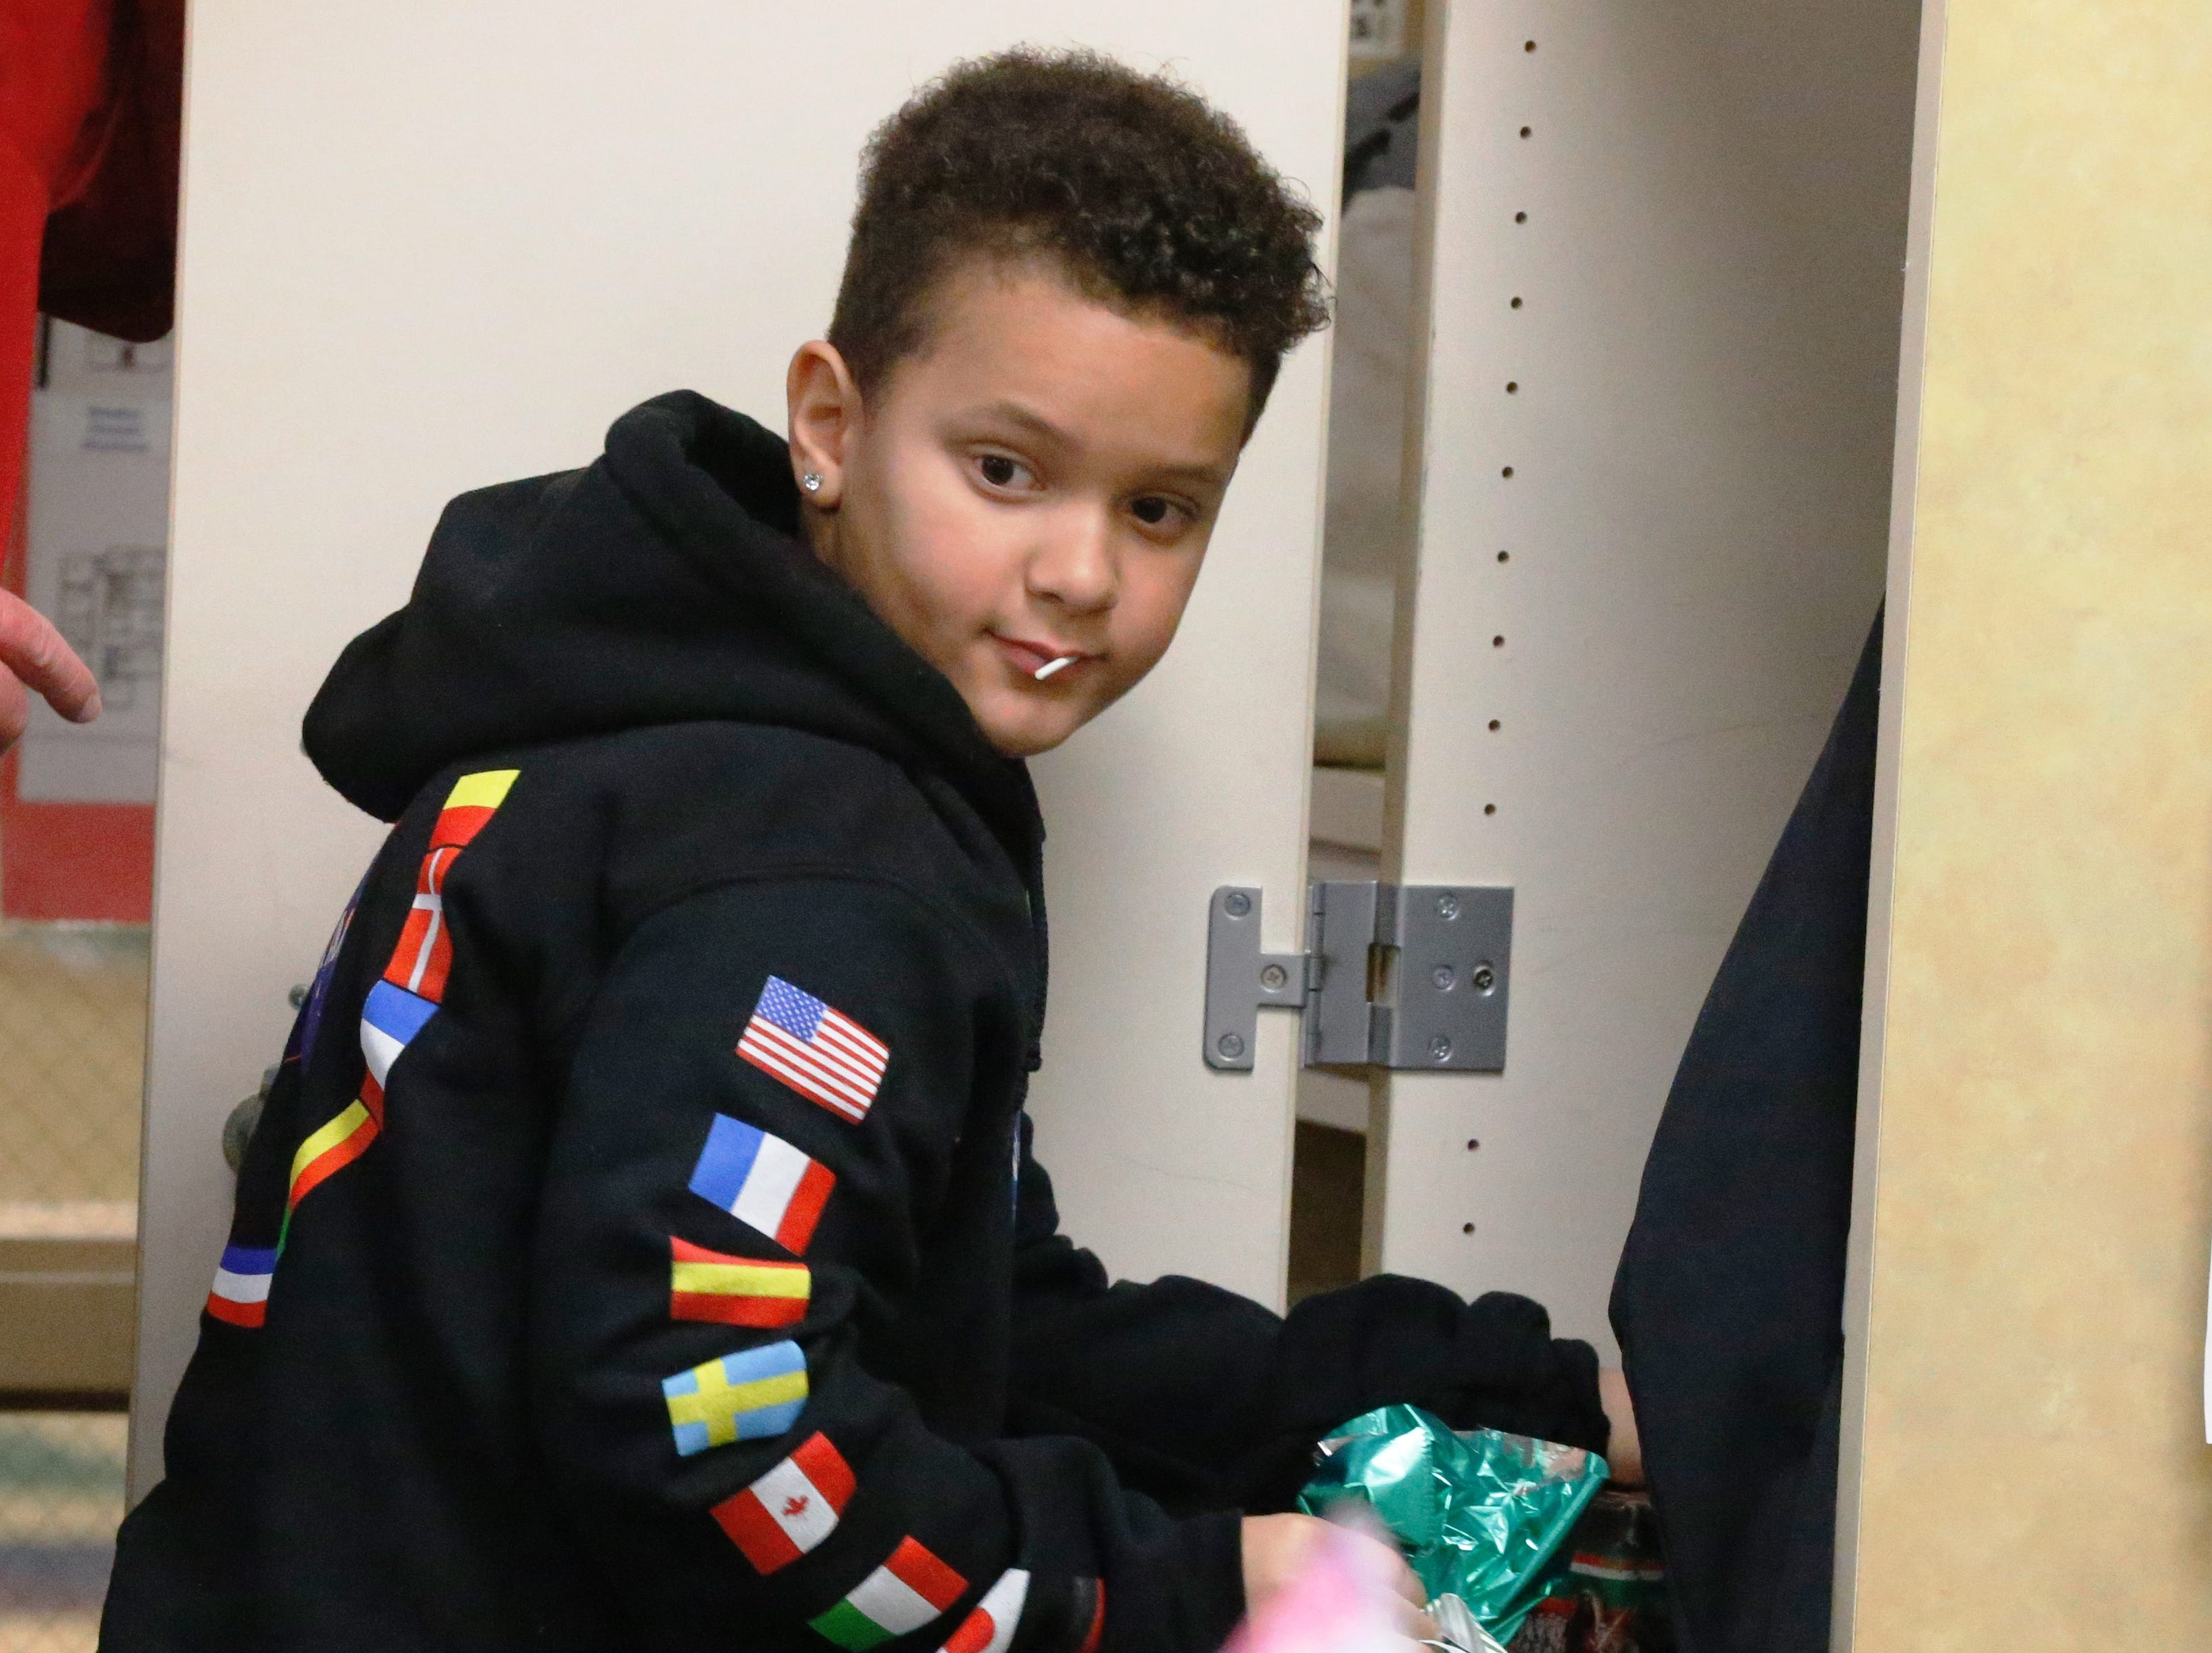 Javeonte Johnson, a fourth-grader at Fairview Elementary School gets a gift out of his locker as he and classmate D. J. Allen surprised classmate Joshua idle and his younger brother, Ryan, with an Xbox One S. Allen and Johnson founded the 'Josh Squad,' a store that sold pictures to raise money for Idle. Idle was involved in an accident and lost his mom in Dec. 2018.